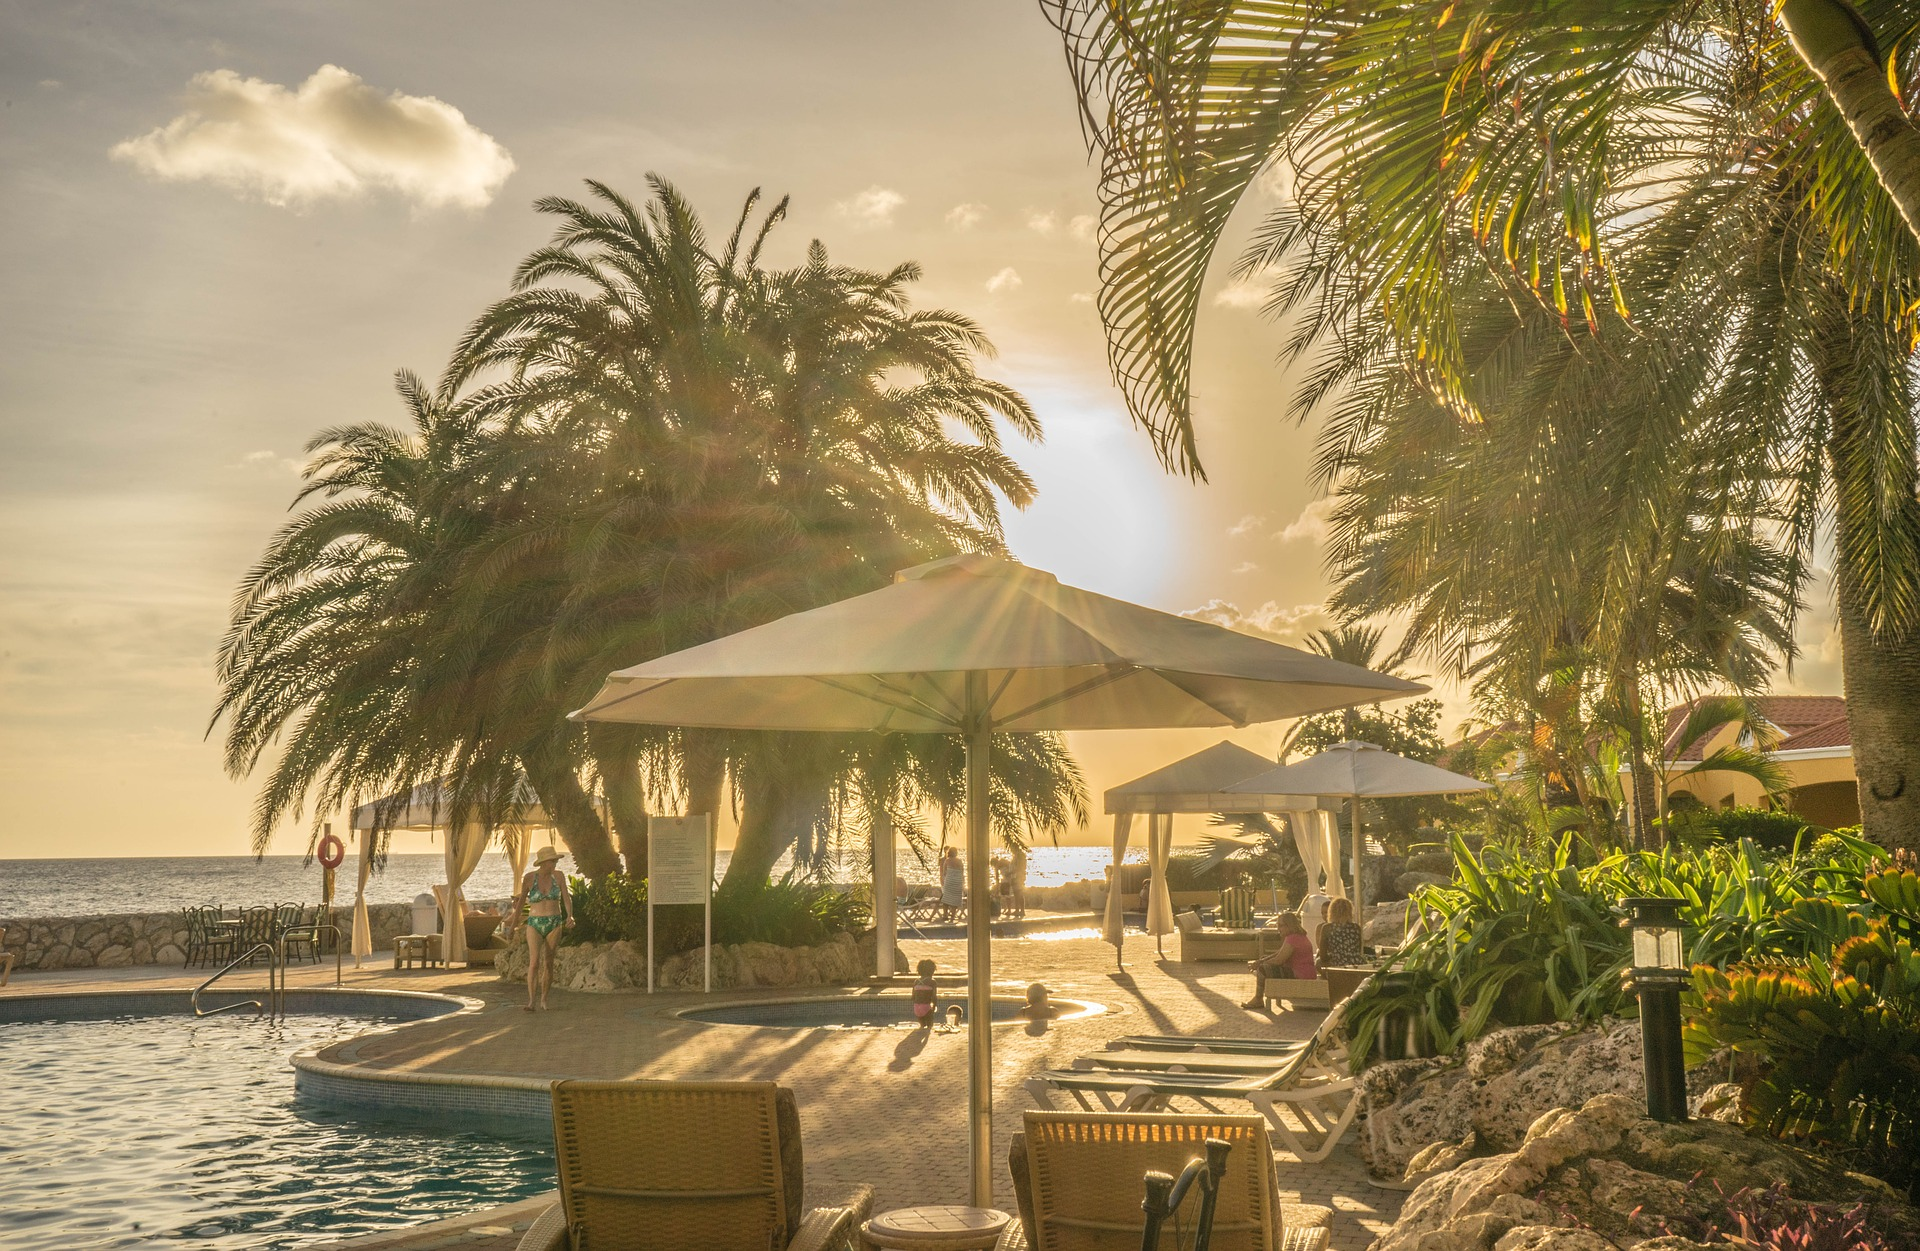 All-Inclusive Vacation: Choosing a Resort or Cruise